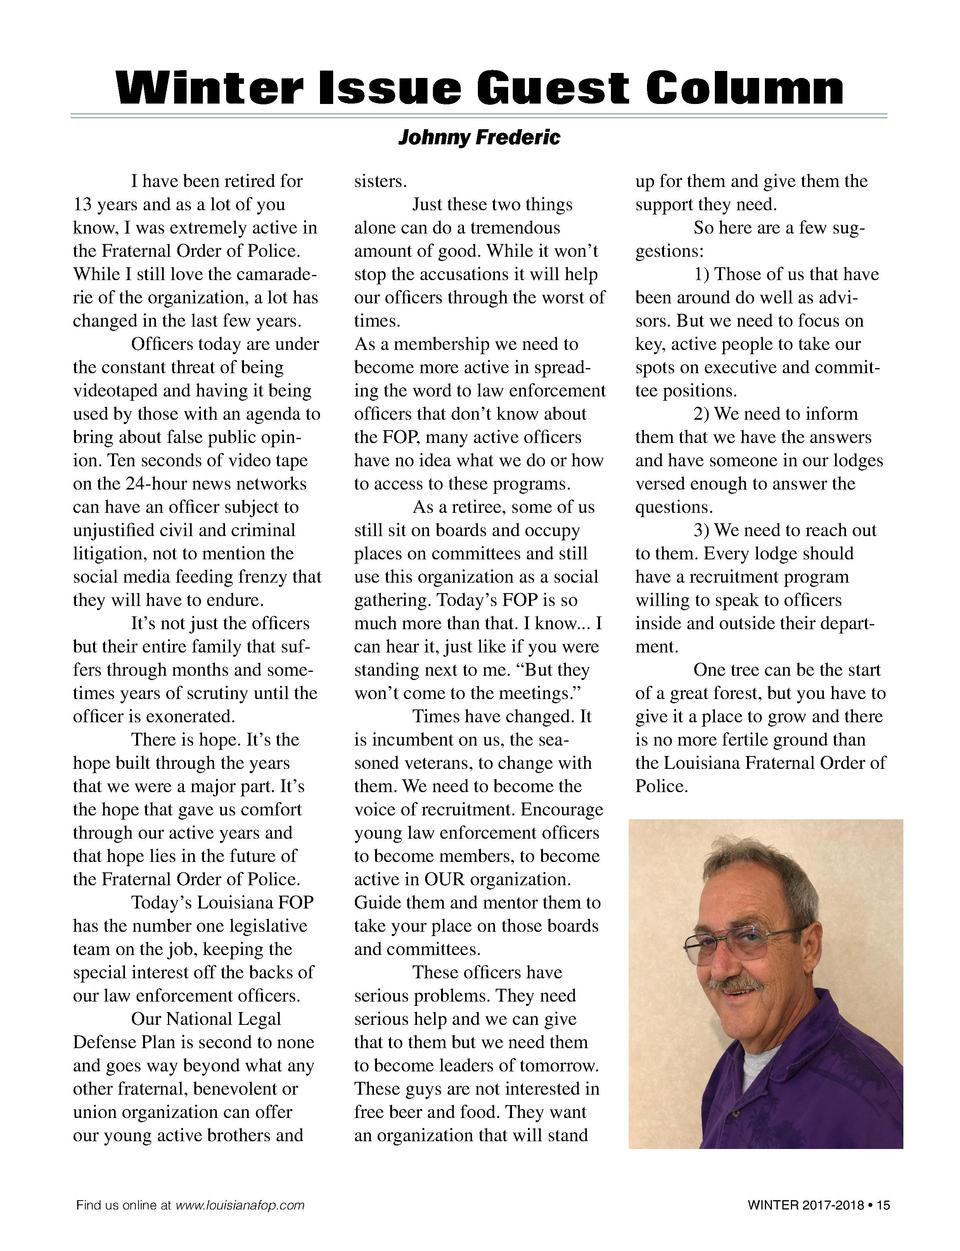 Winter Issue Guest Column Johnny Frederic   I have been retired for 13 years and as a lot of you know, I was extremely act...